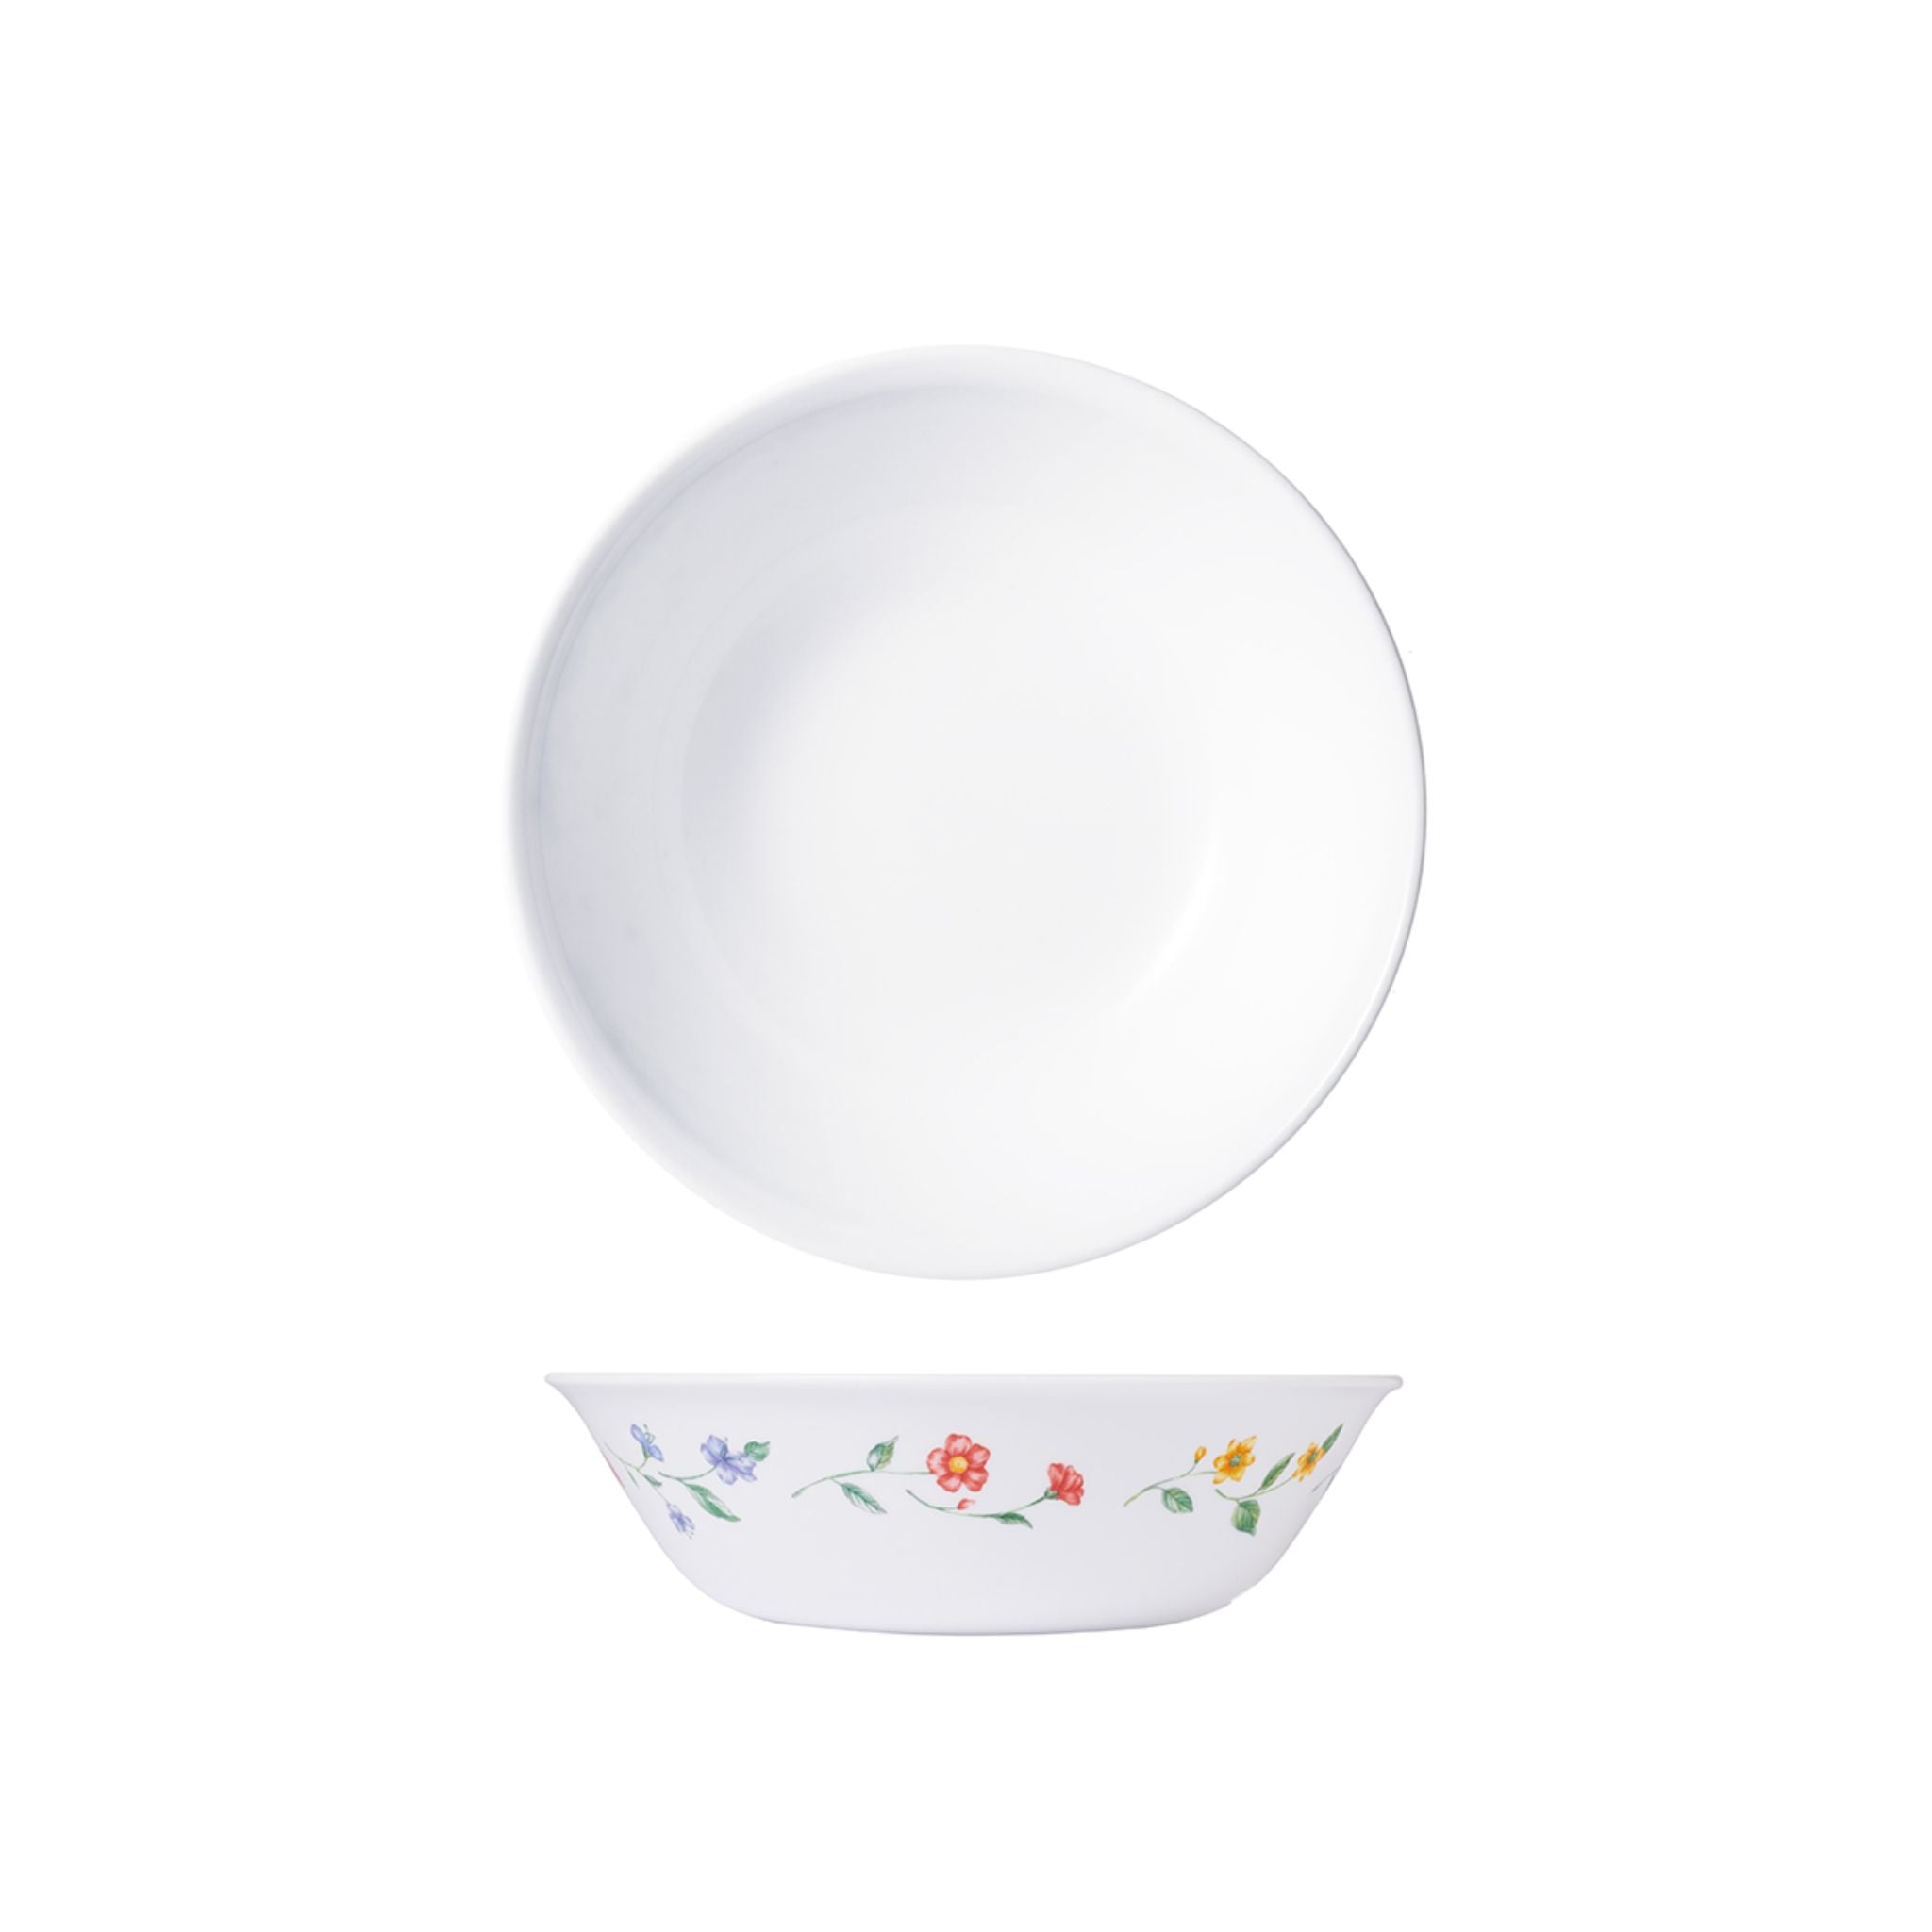 Corelle 1L Serving Bowl - Purun Flower